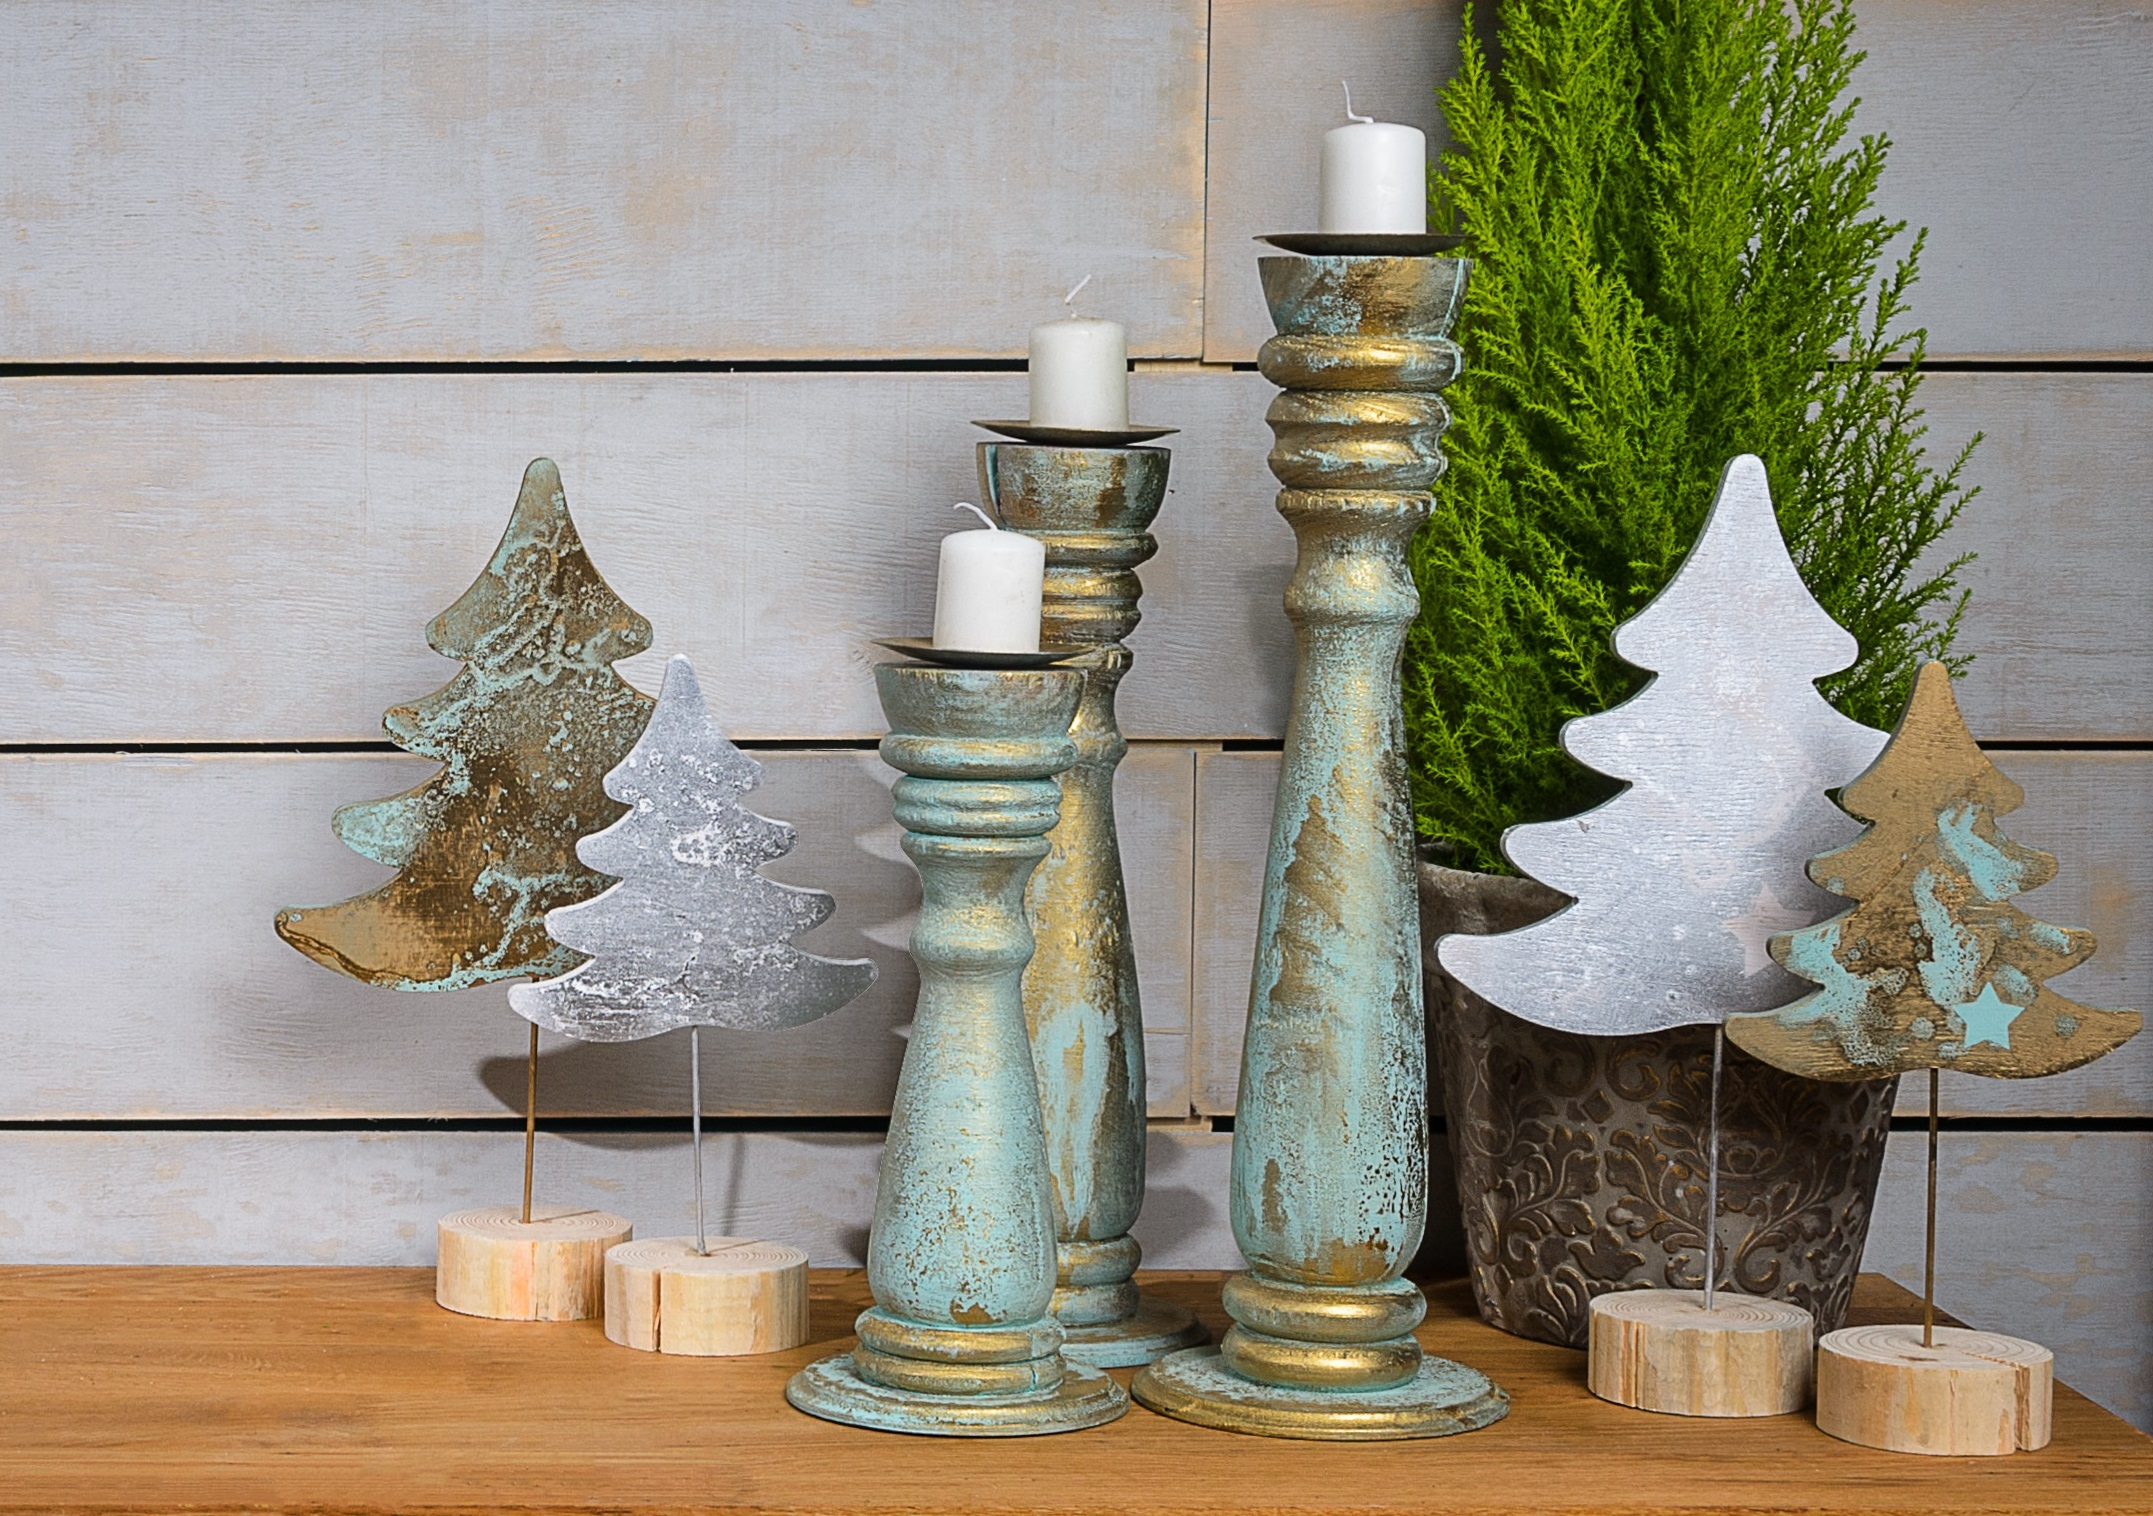 Adding patina to wooden decor